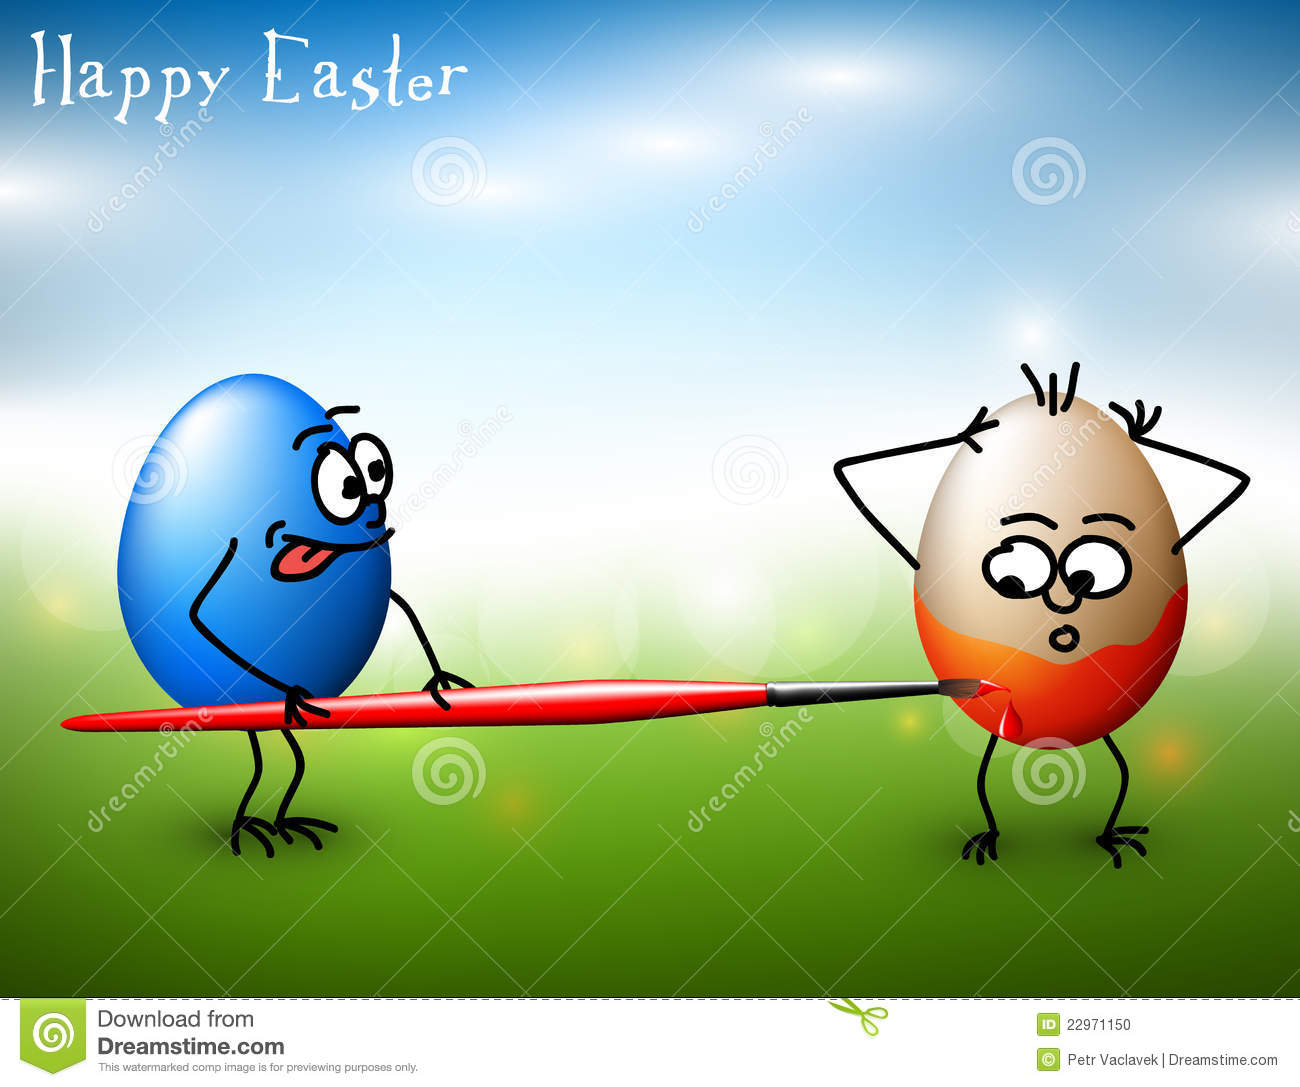 Funny happy easter cards merry christmas and happy new year 2018 funny happy easter cards kristyandbryce Gallery